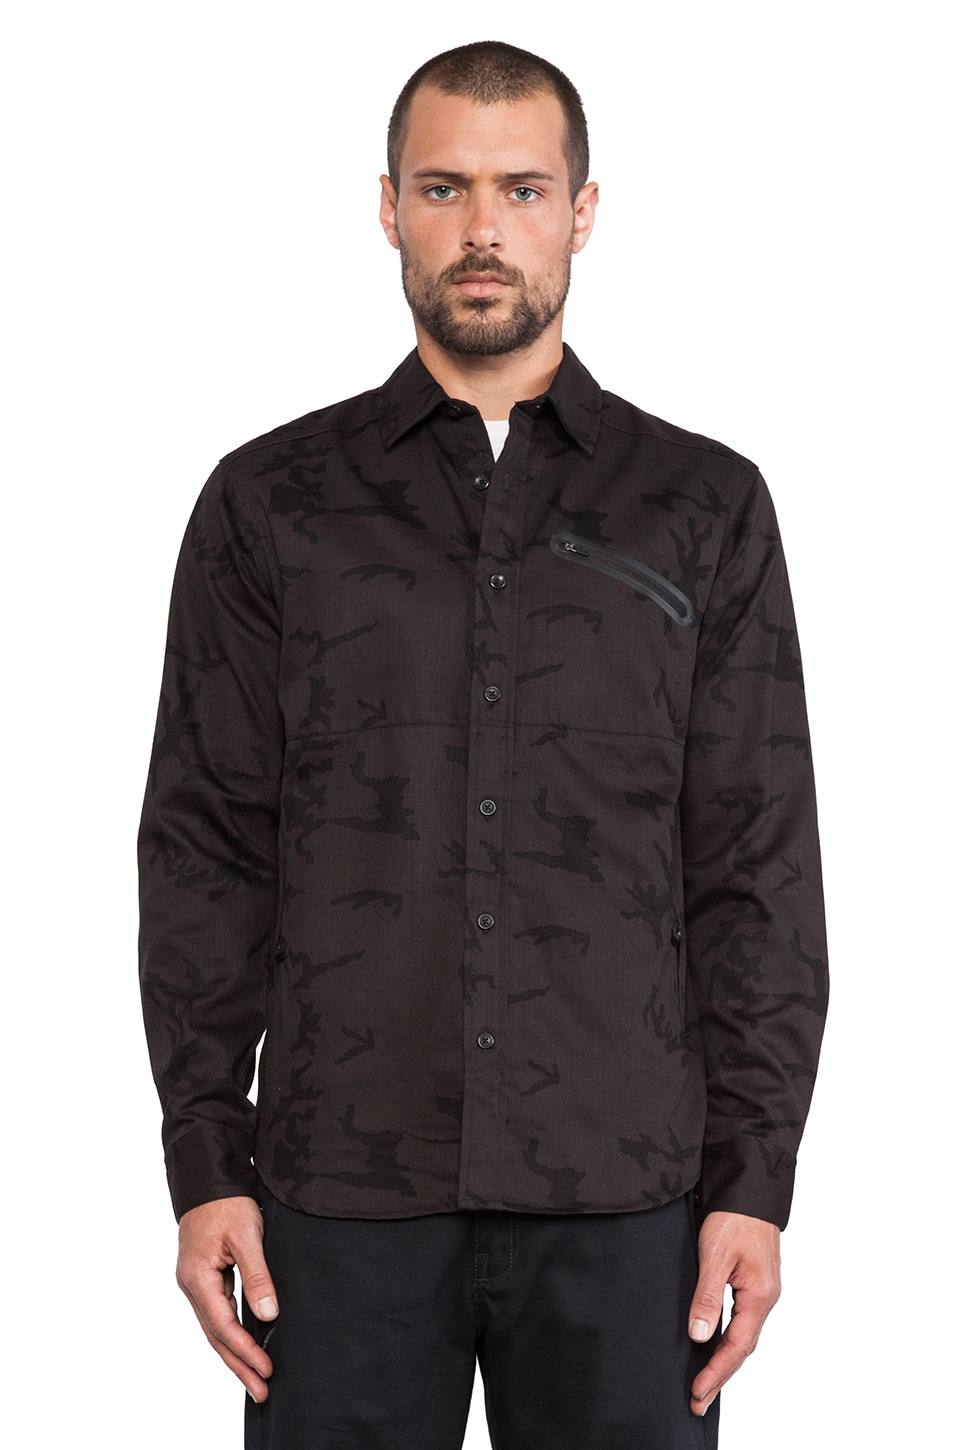 ourCASTE Moose Shirt in OD Camo